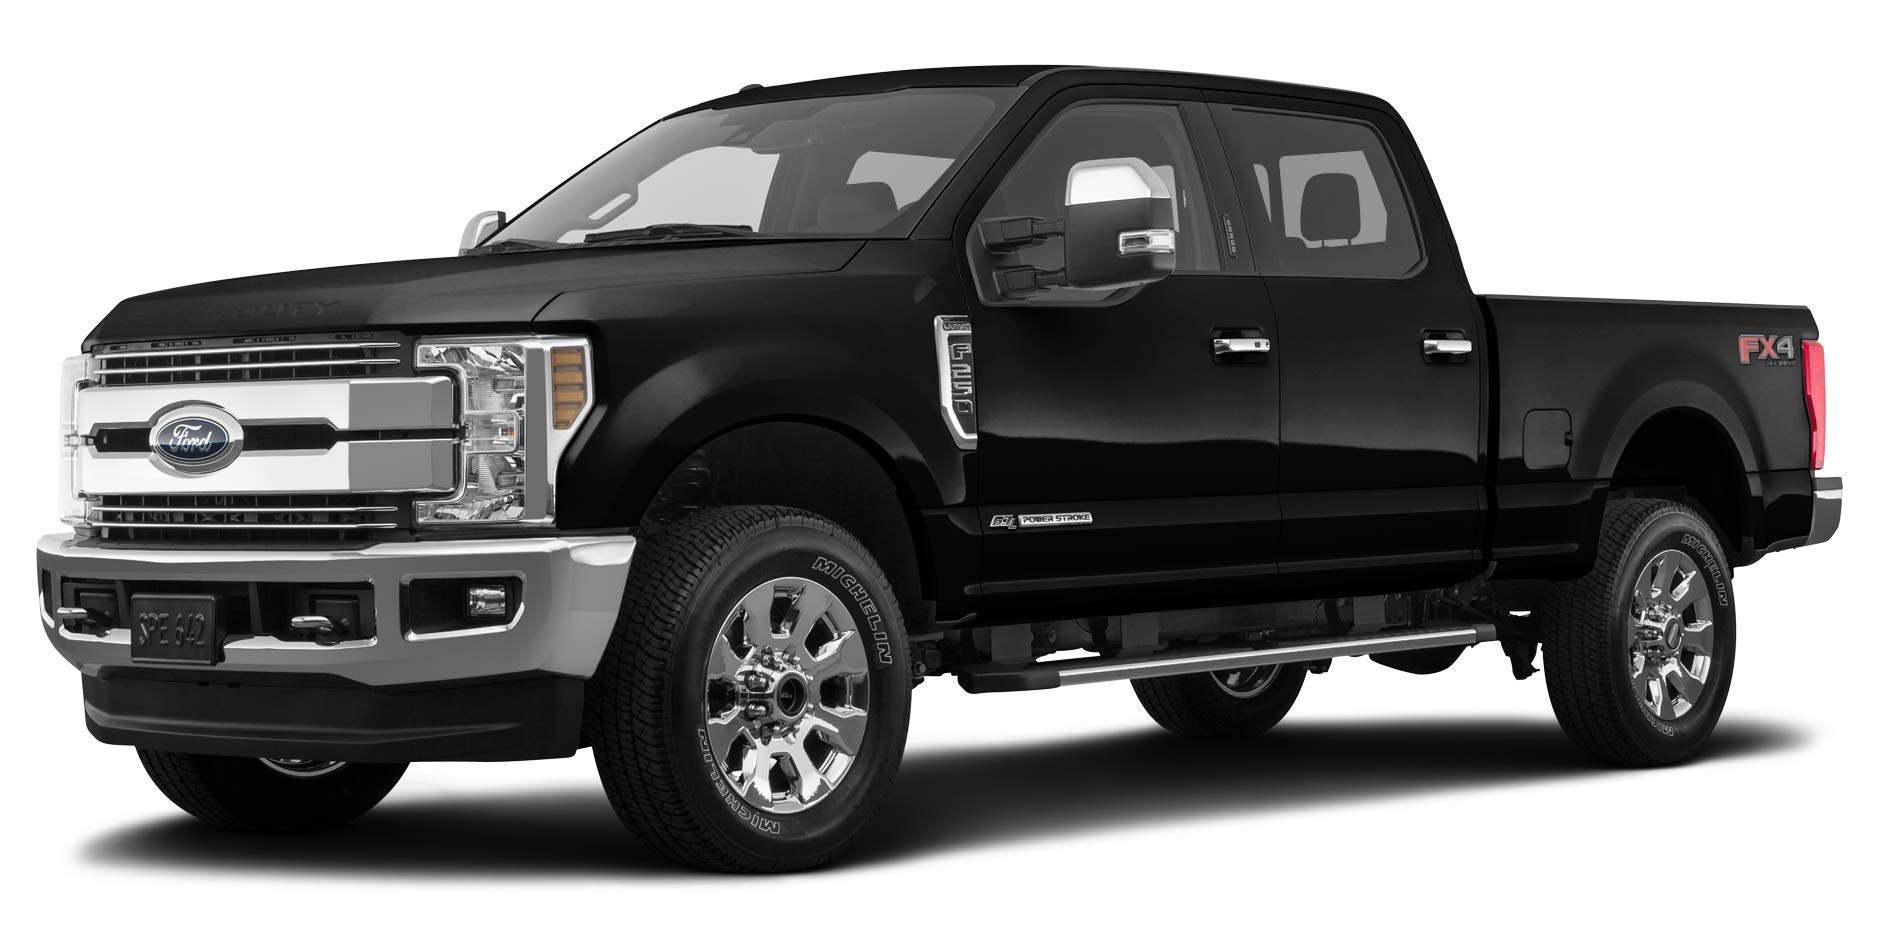 Amazon.com: 2019 Ford F-250 Super Duty Reviews, Images ...